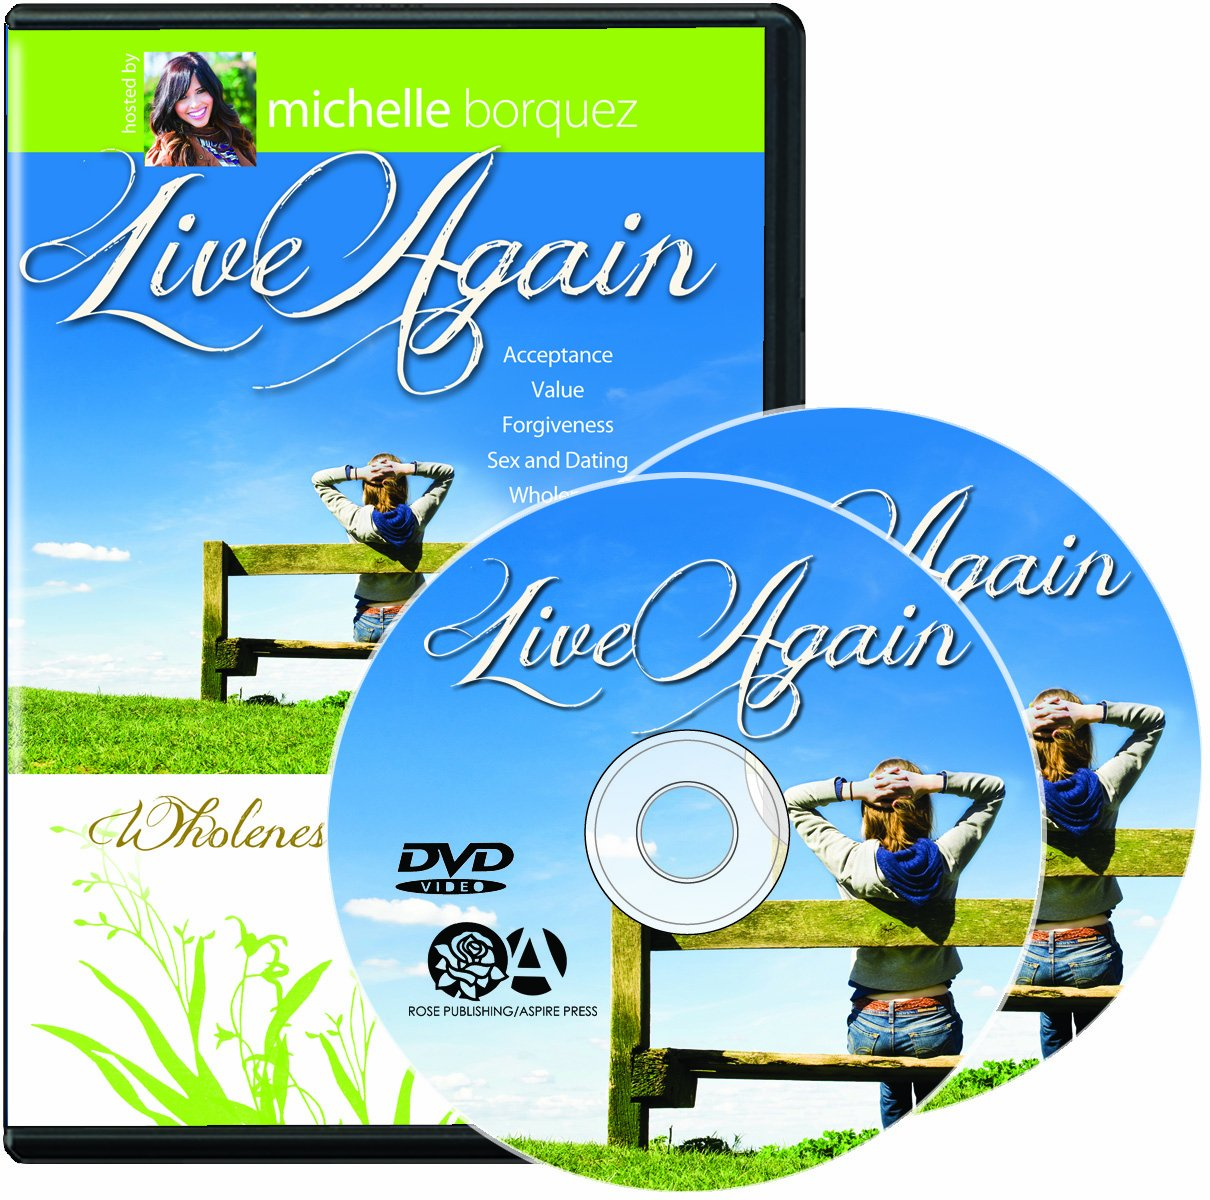 Live Again Wholeness After Divorce Dvd Home Version Michelle Borquez 9781596367456 Amazon Com Books She lived with her family in maia near porto but died at her partner's home in trofa half an hour's drive north of the northern portuguese city. live again wholeness after divorce dvd